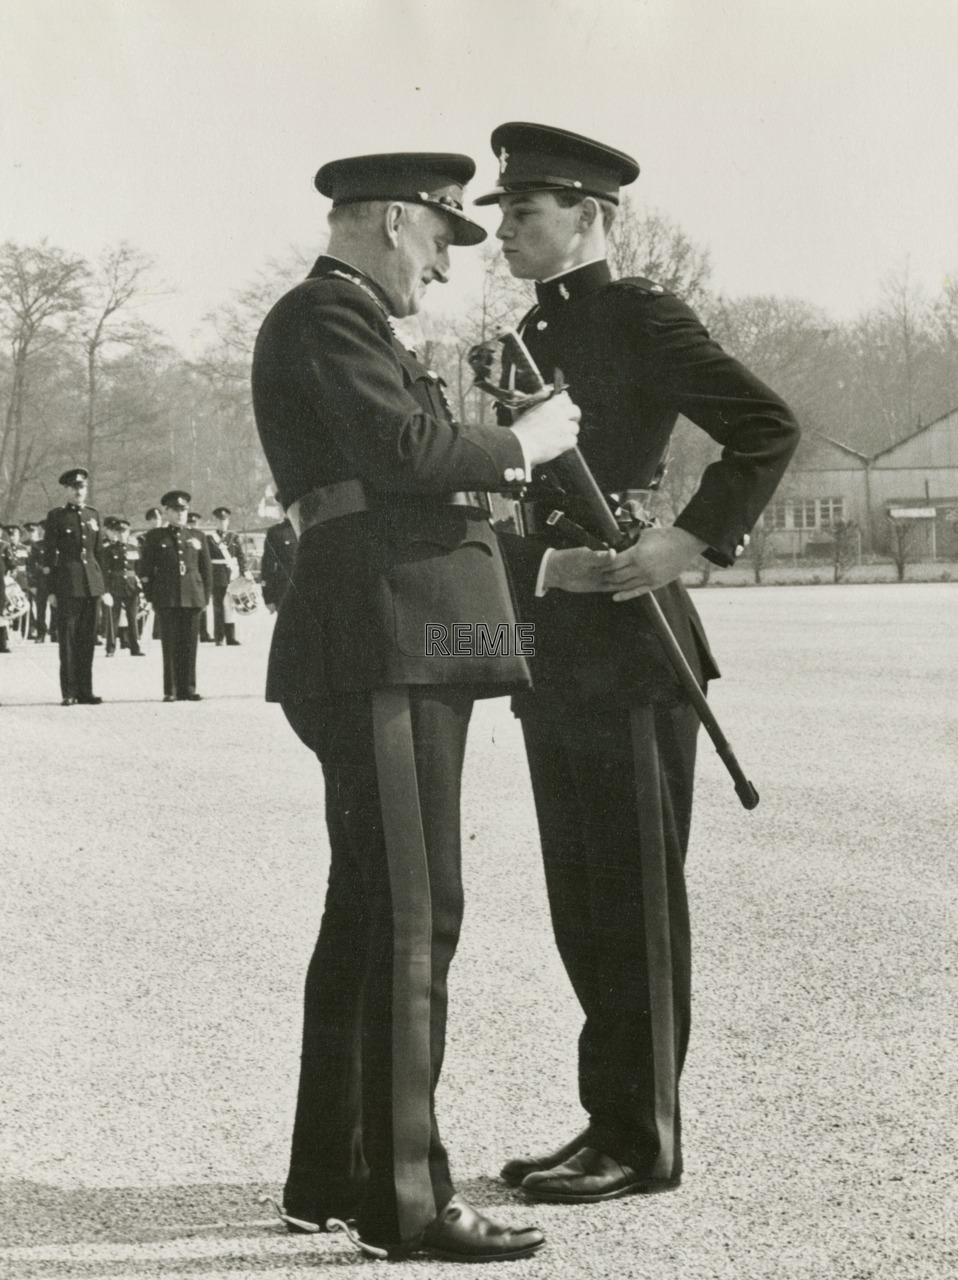 'A Unique Corps Occasion': Major General Lord, CB, CBE presents his sword to his son, May 1960.